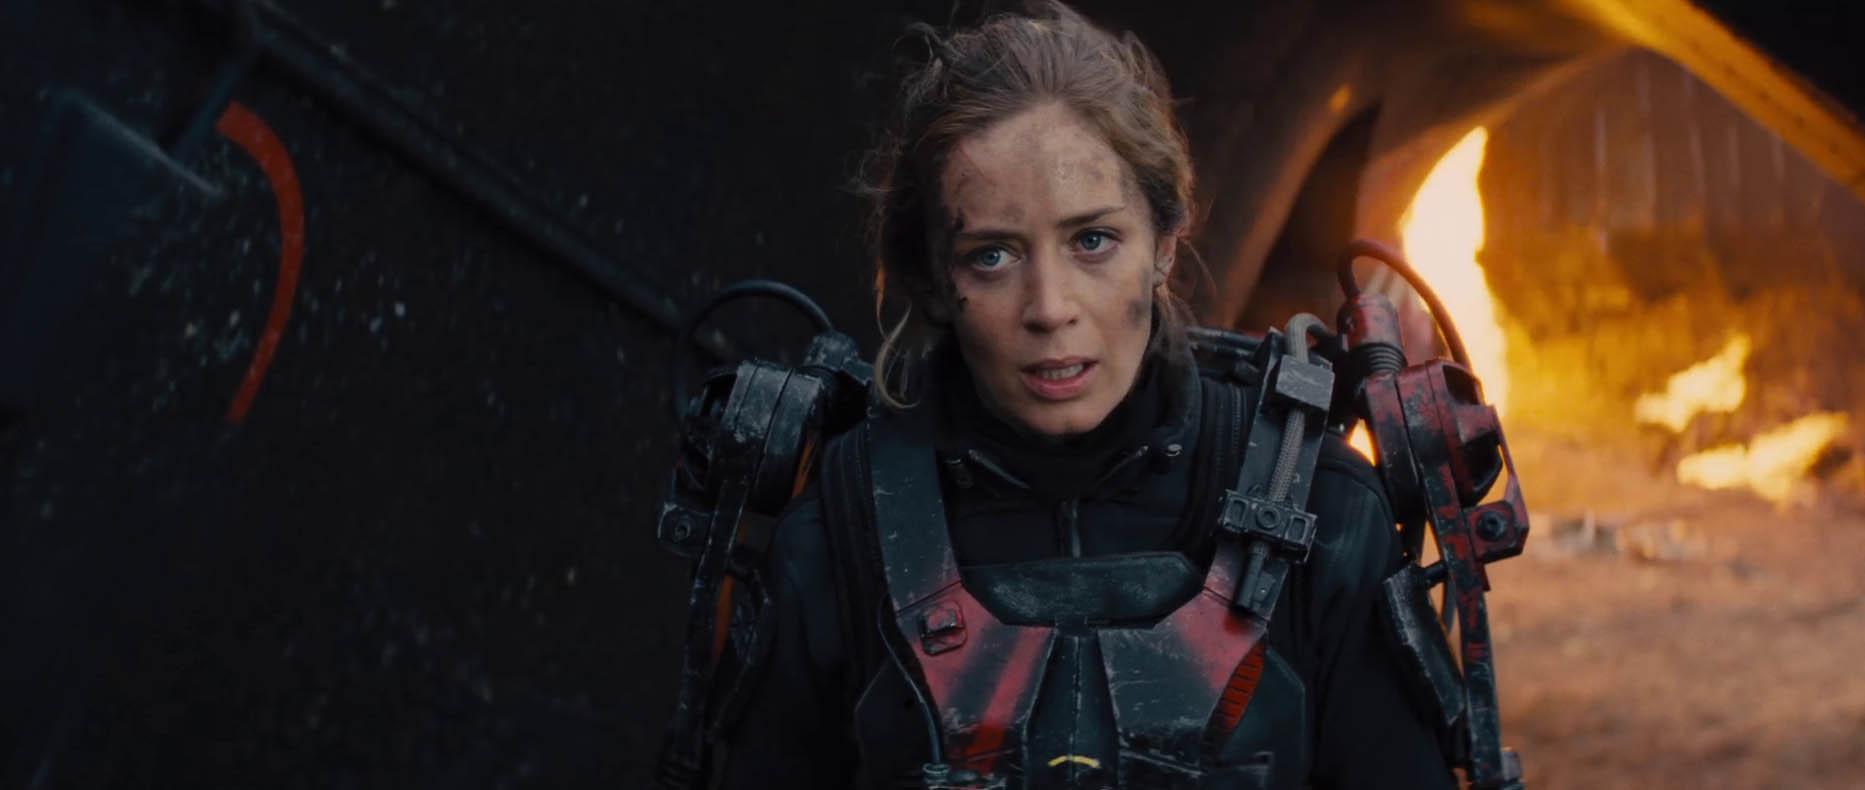 Movie Review: Edge of Tomorrow - Electric Shadows